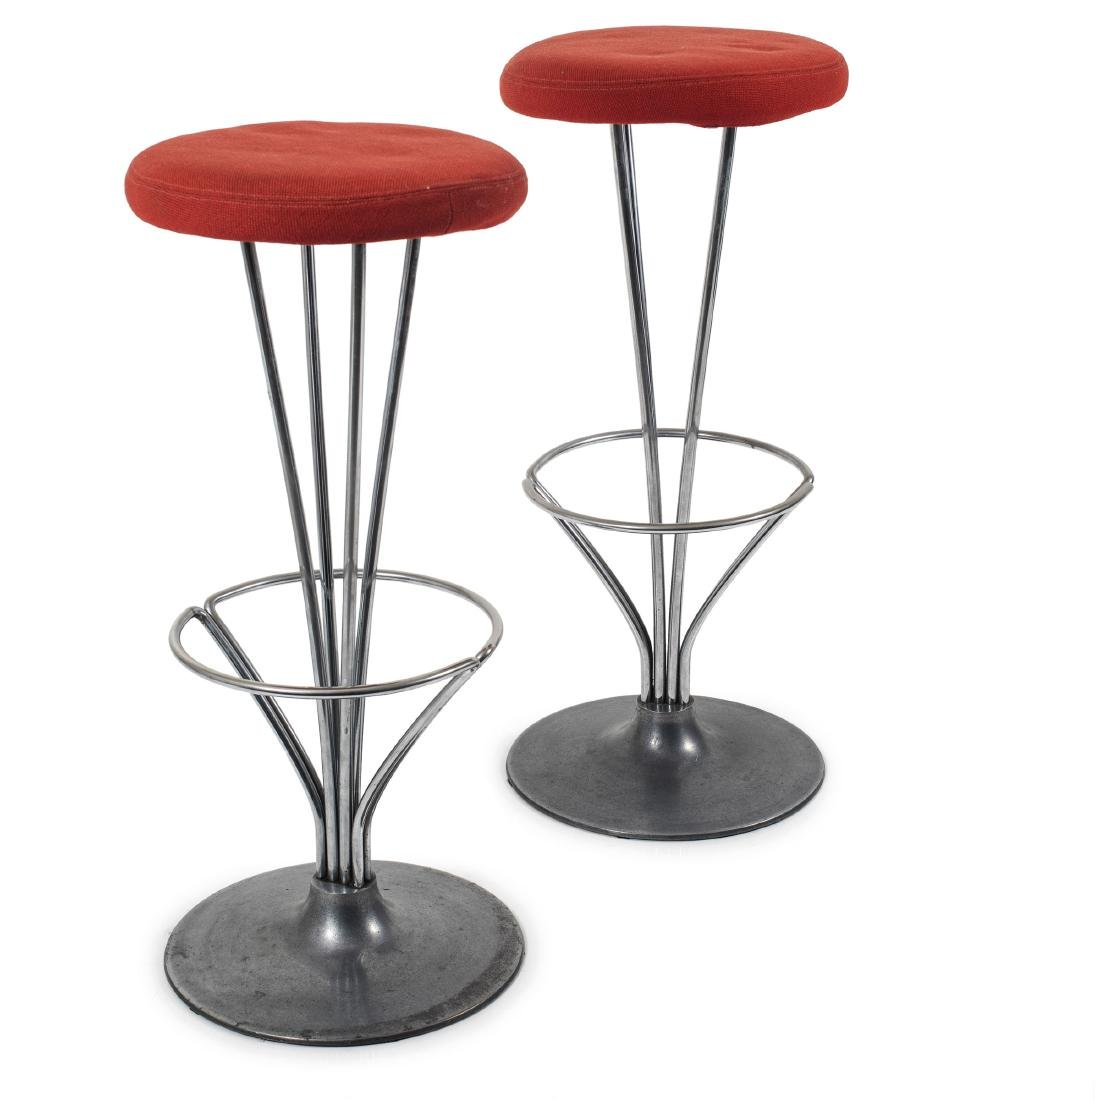 Two barstools, 1961